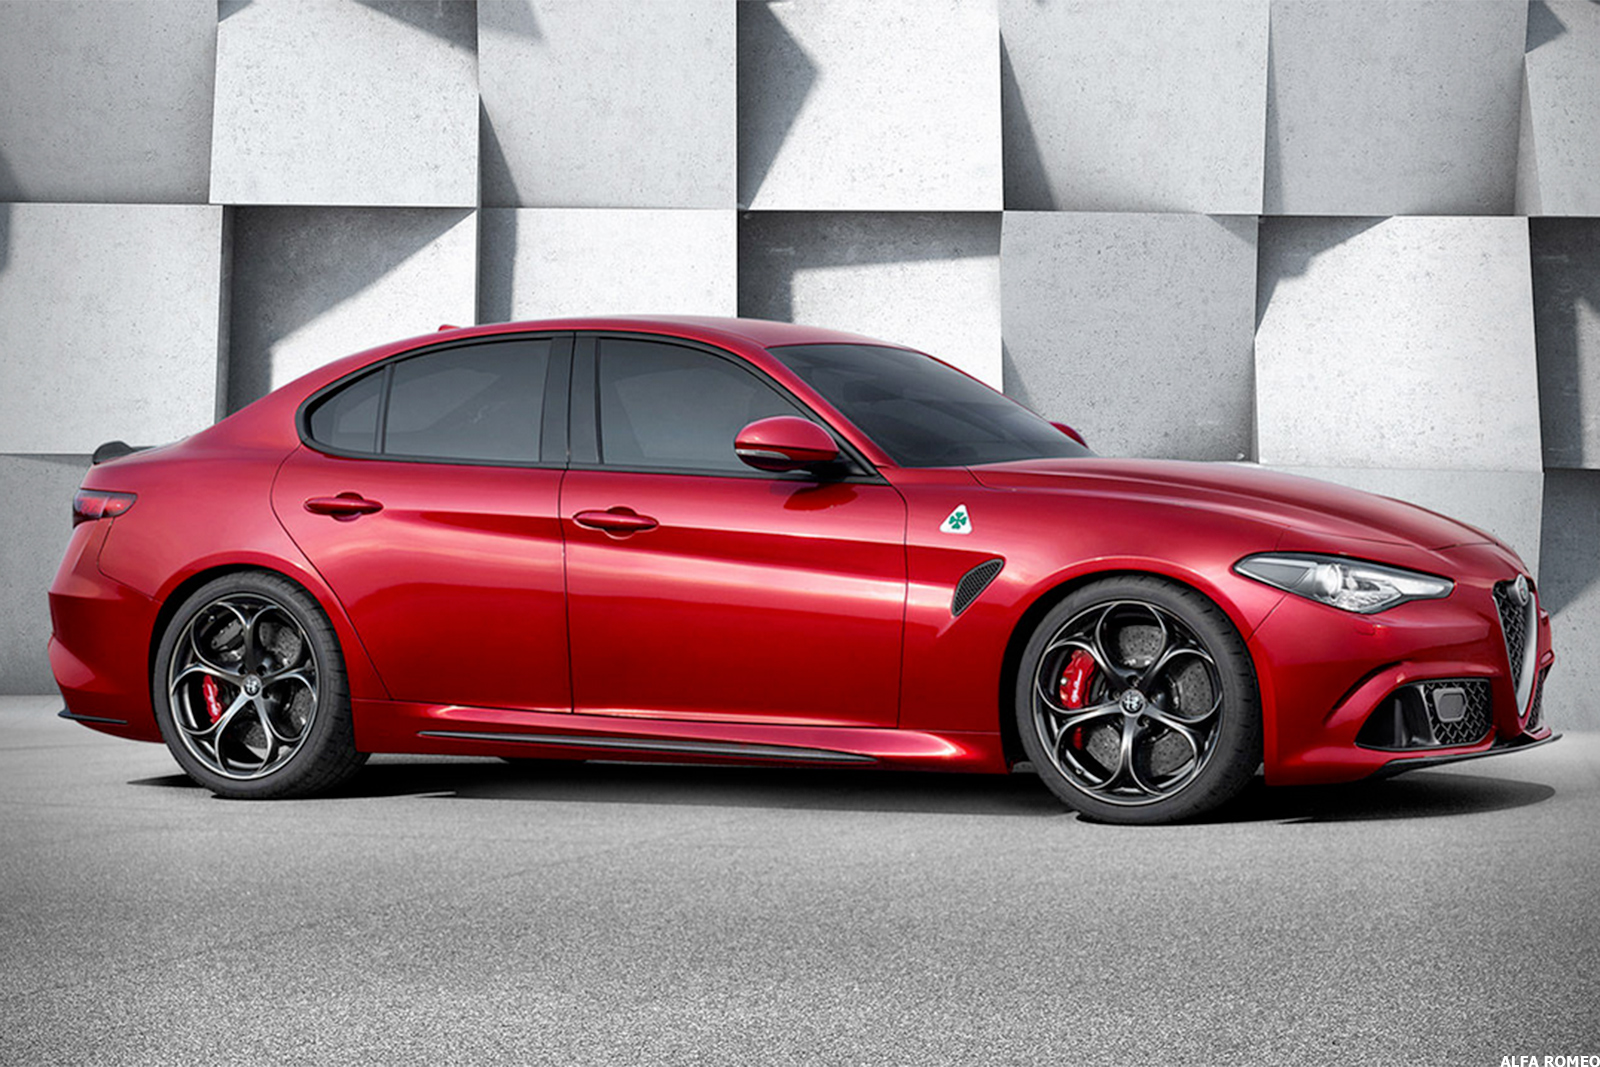 fiat chrysler fcau unveils new alfa romeo sedan as it spruces up for possible merger thestreet. Black Bedroom Furniture Sets. Home Design Ideas